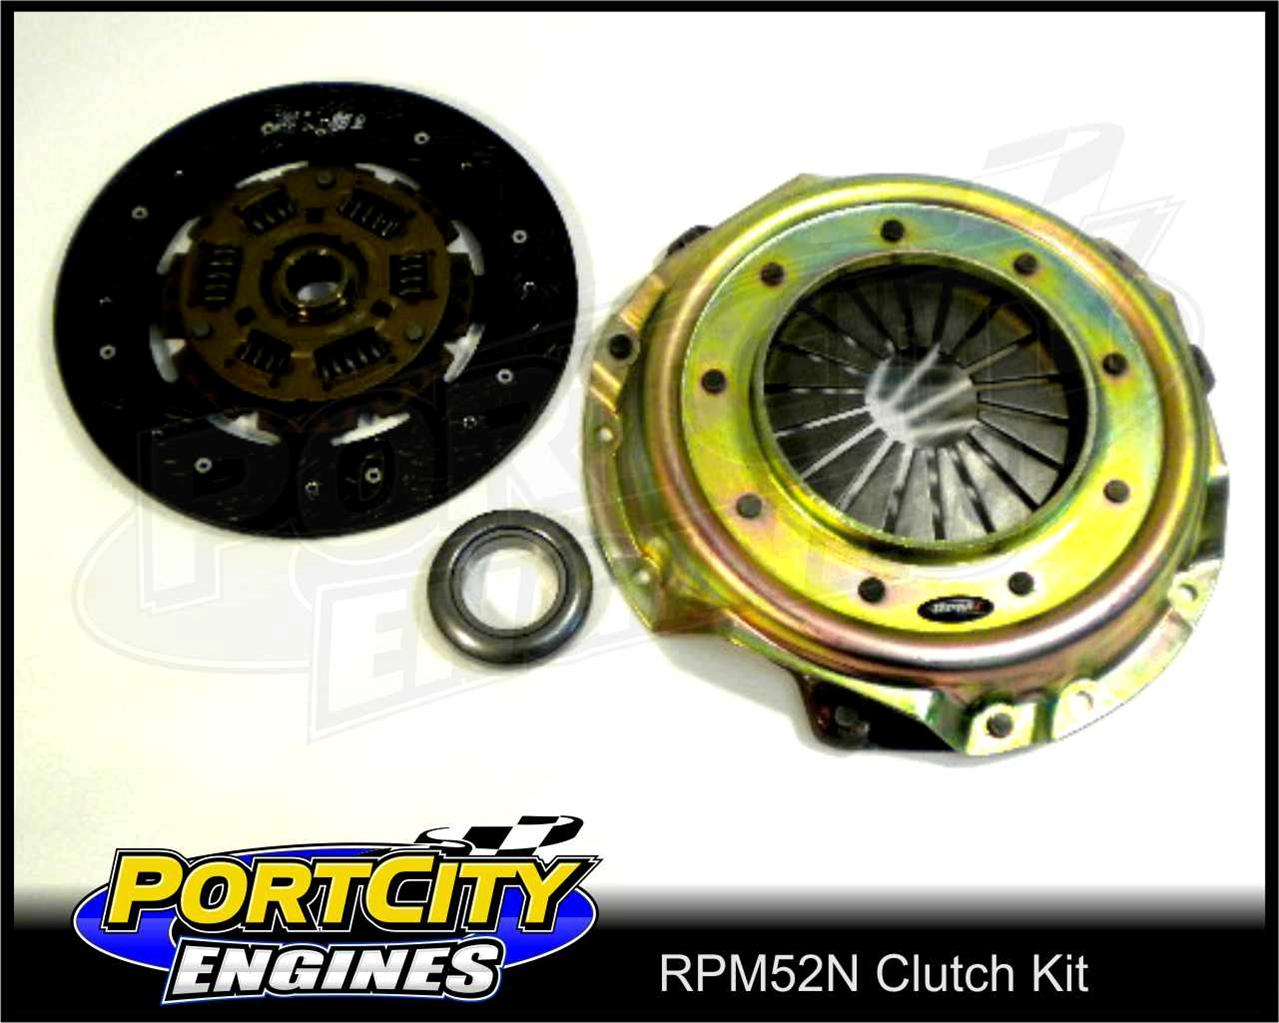 Clutch-Kit-Chrysler-Valiant-Centura-Charger-215-245-265-Hemi-Heavy-Duty